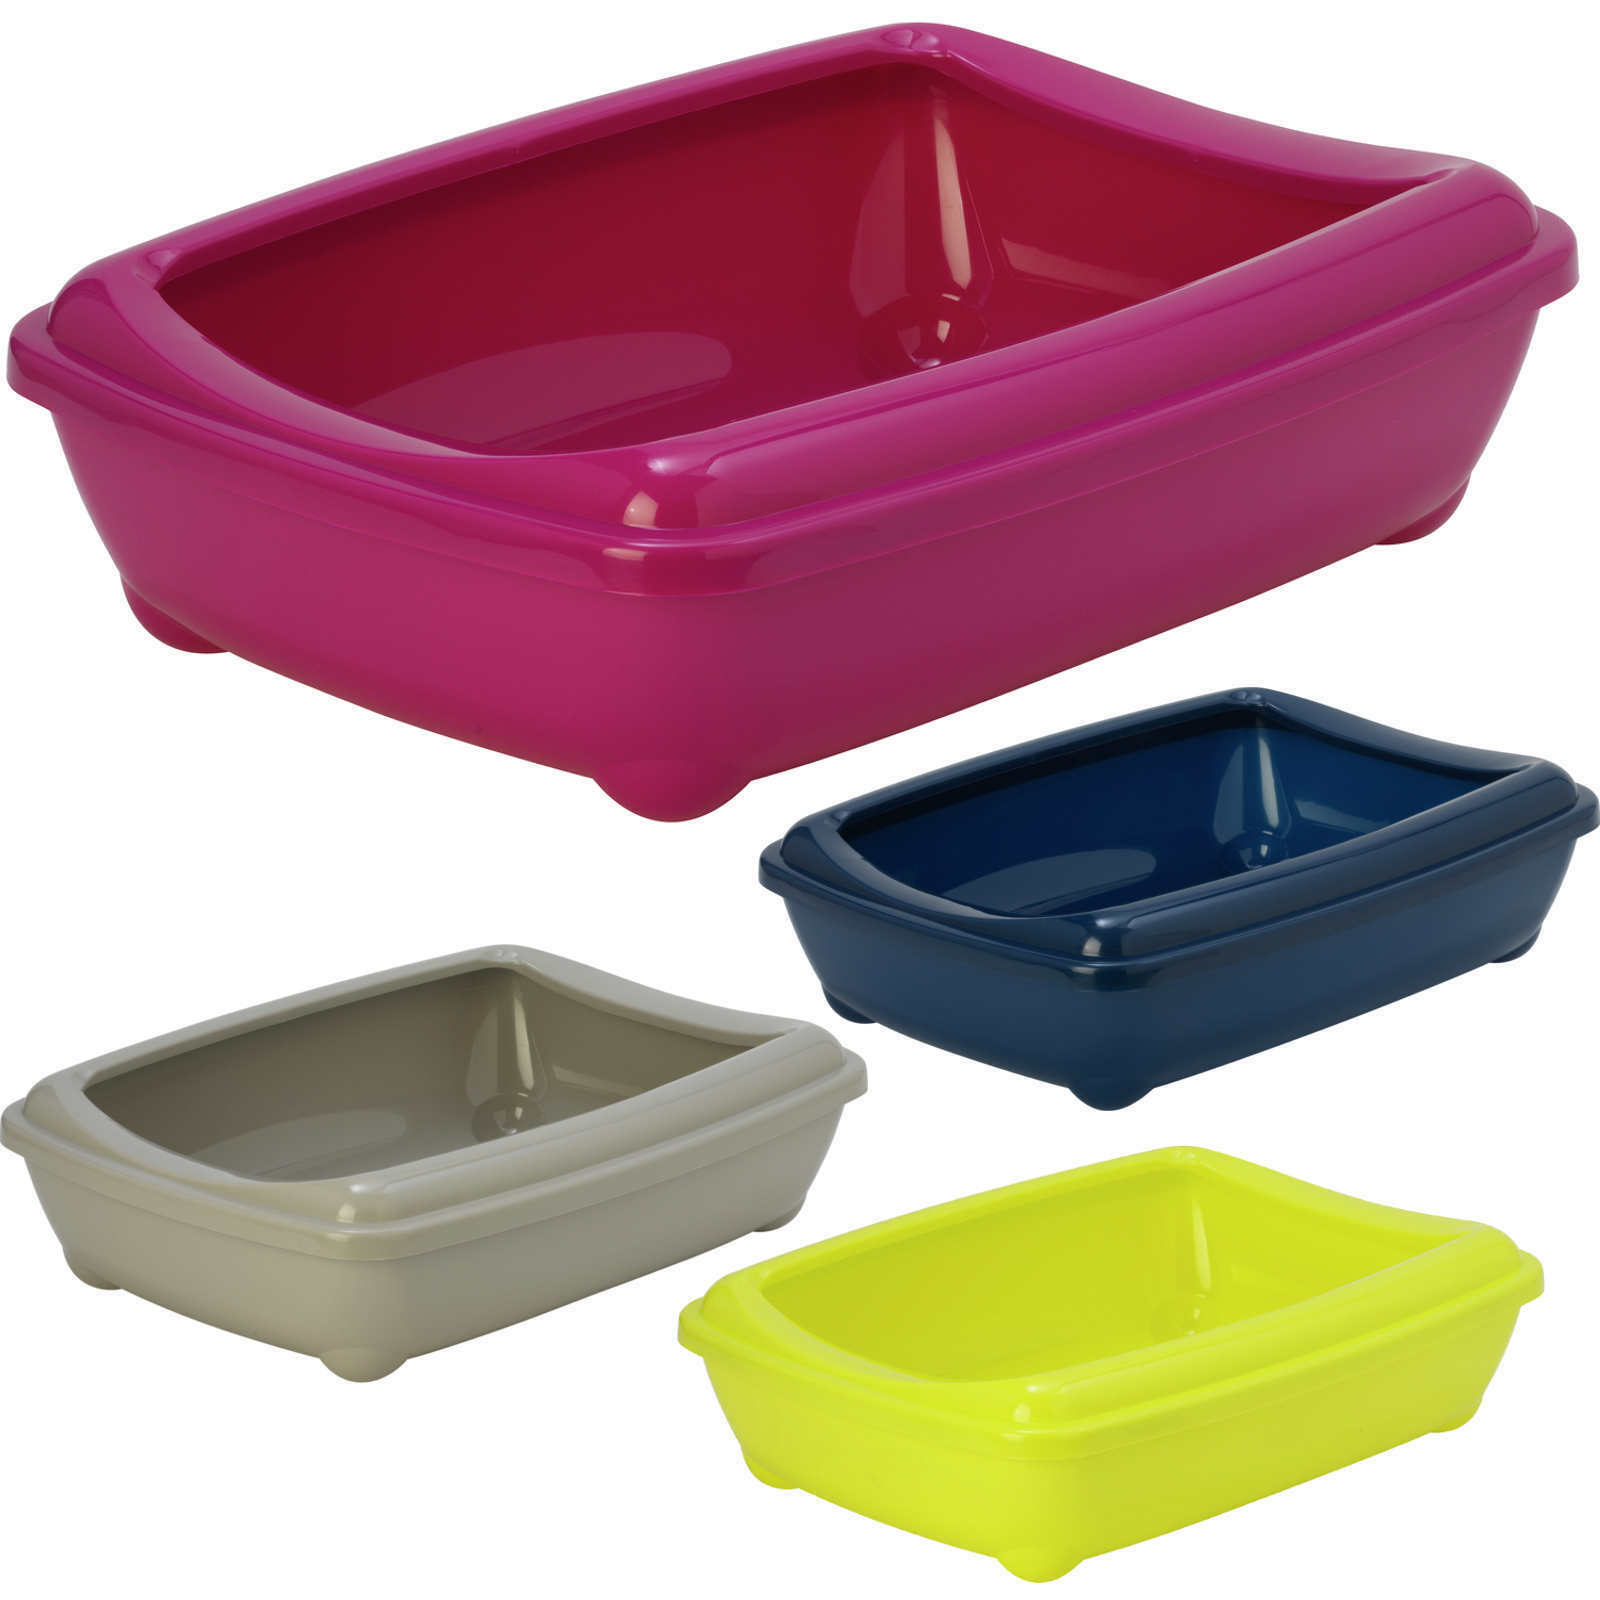 Cat Jumbo Litter Tray With Rim 57x43x16cm 6 Colours Quality Box Pan Toilet Loo